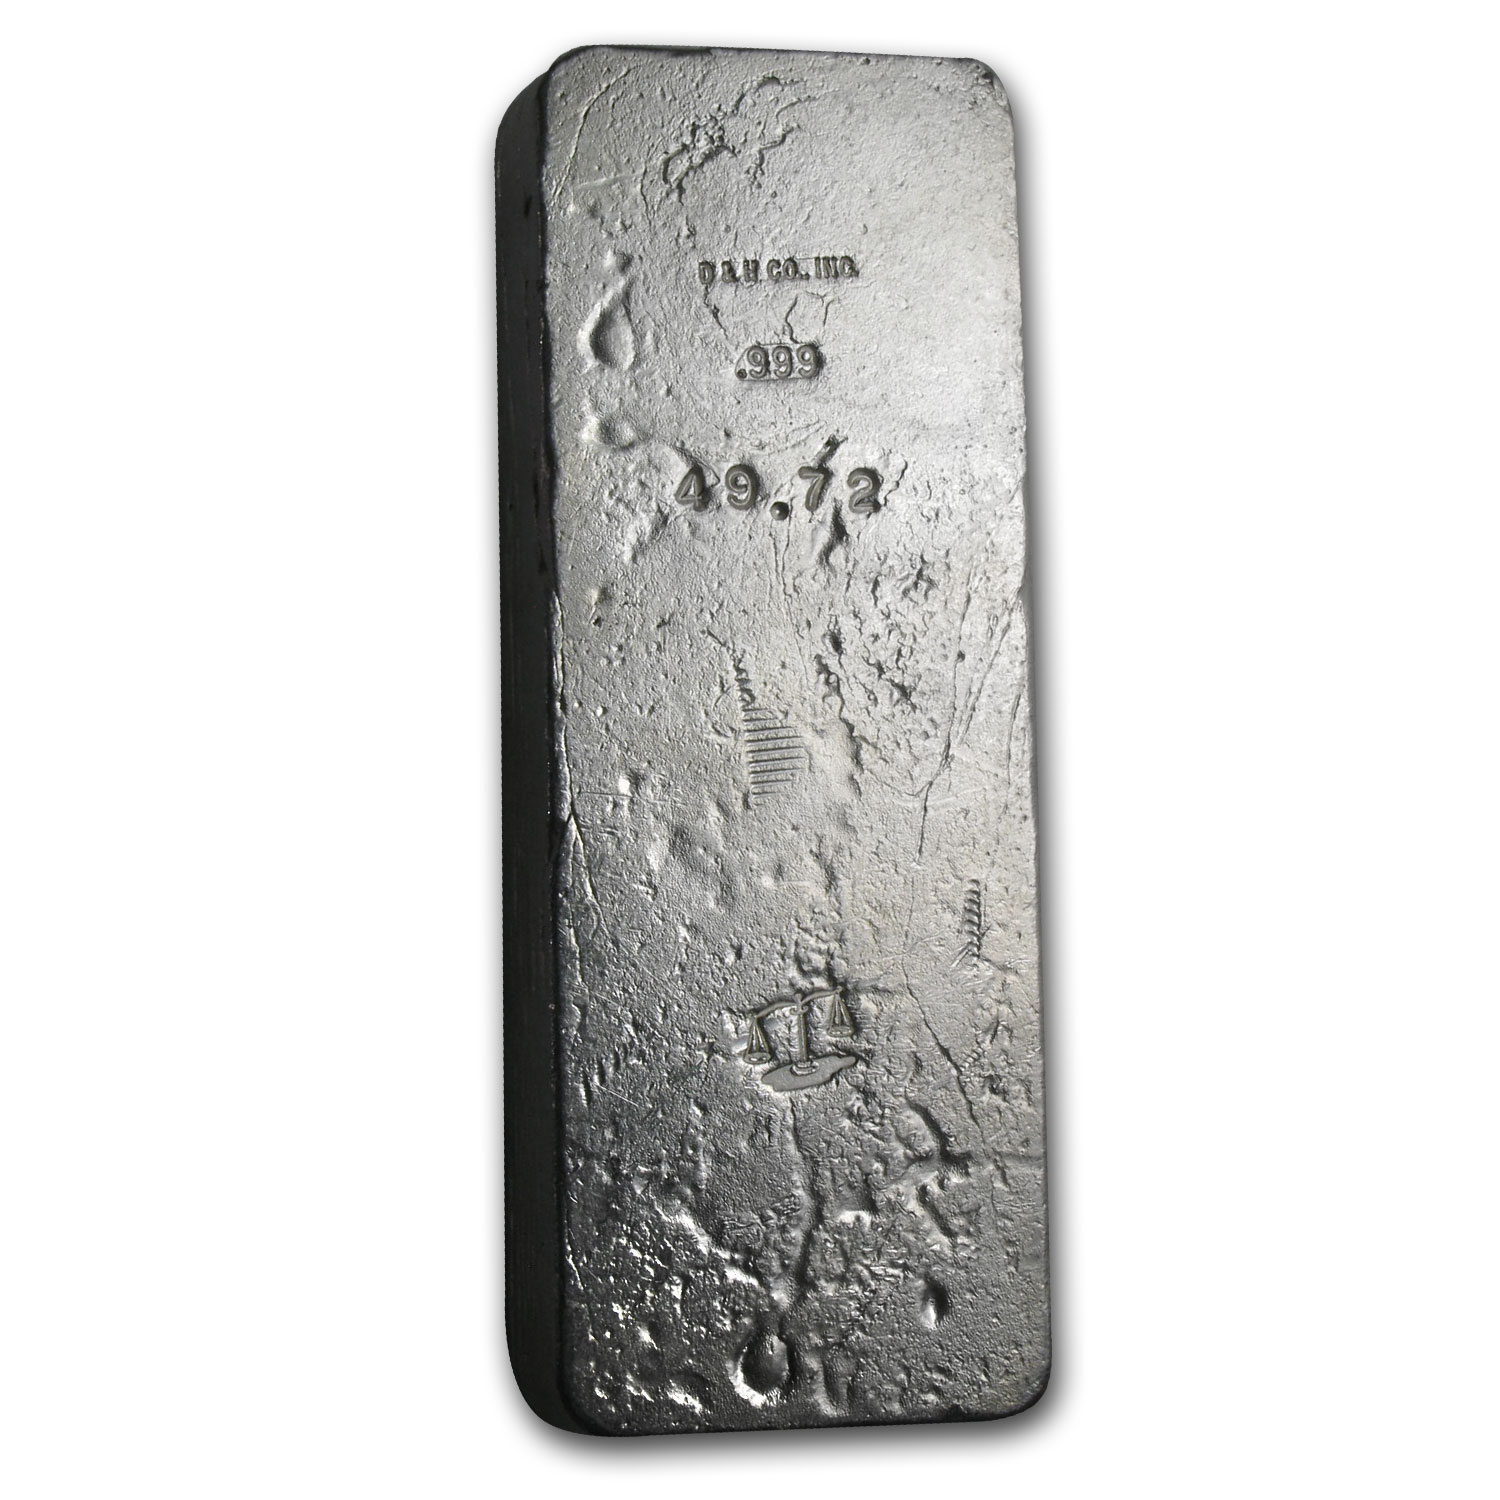 49.72 oz Silver Bars - D & H Company (Scales of Justice)